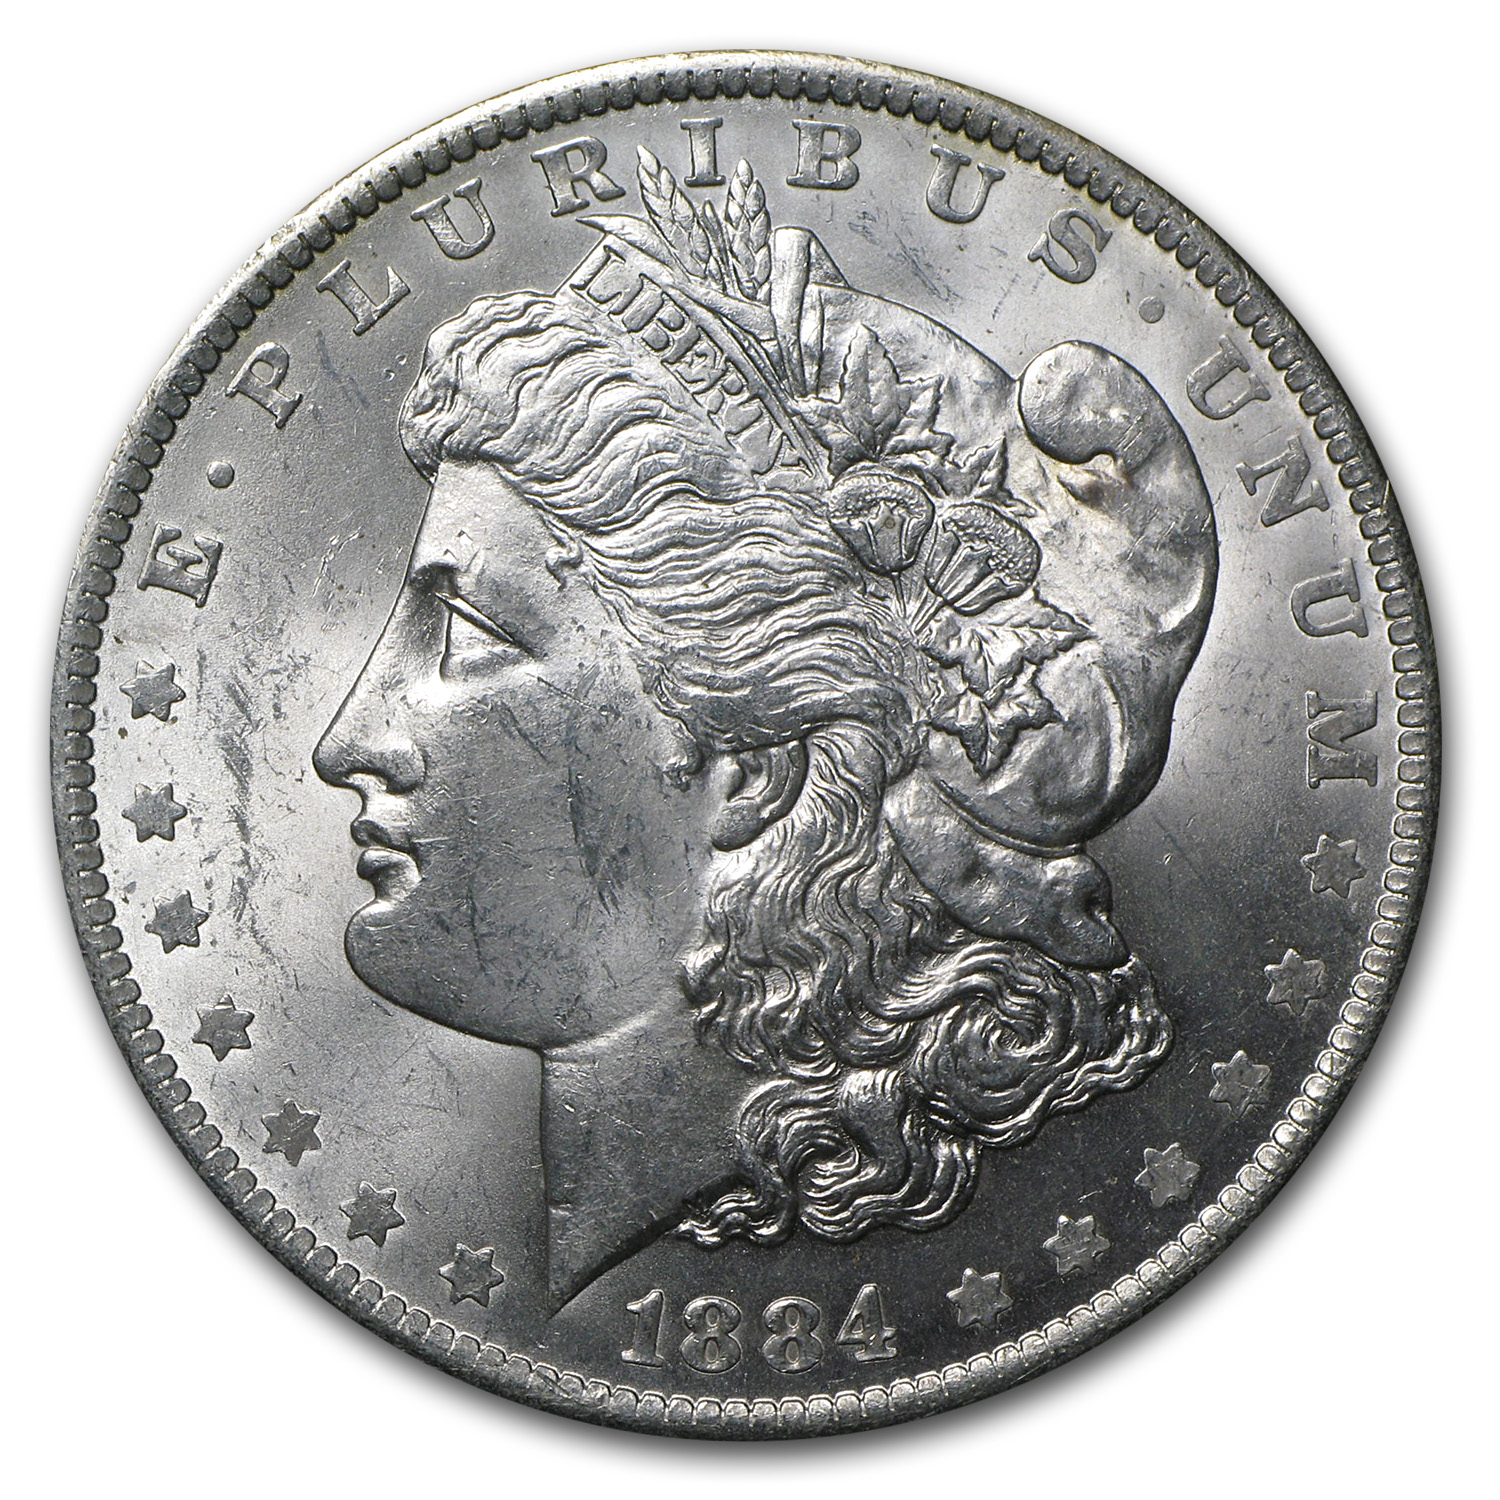 1884-O Morgan Dollar - Brilliant Uncirculated